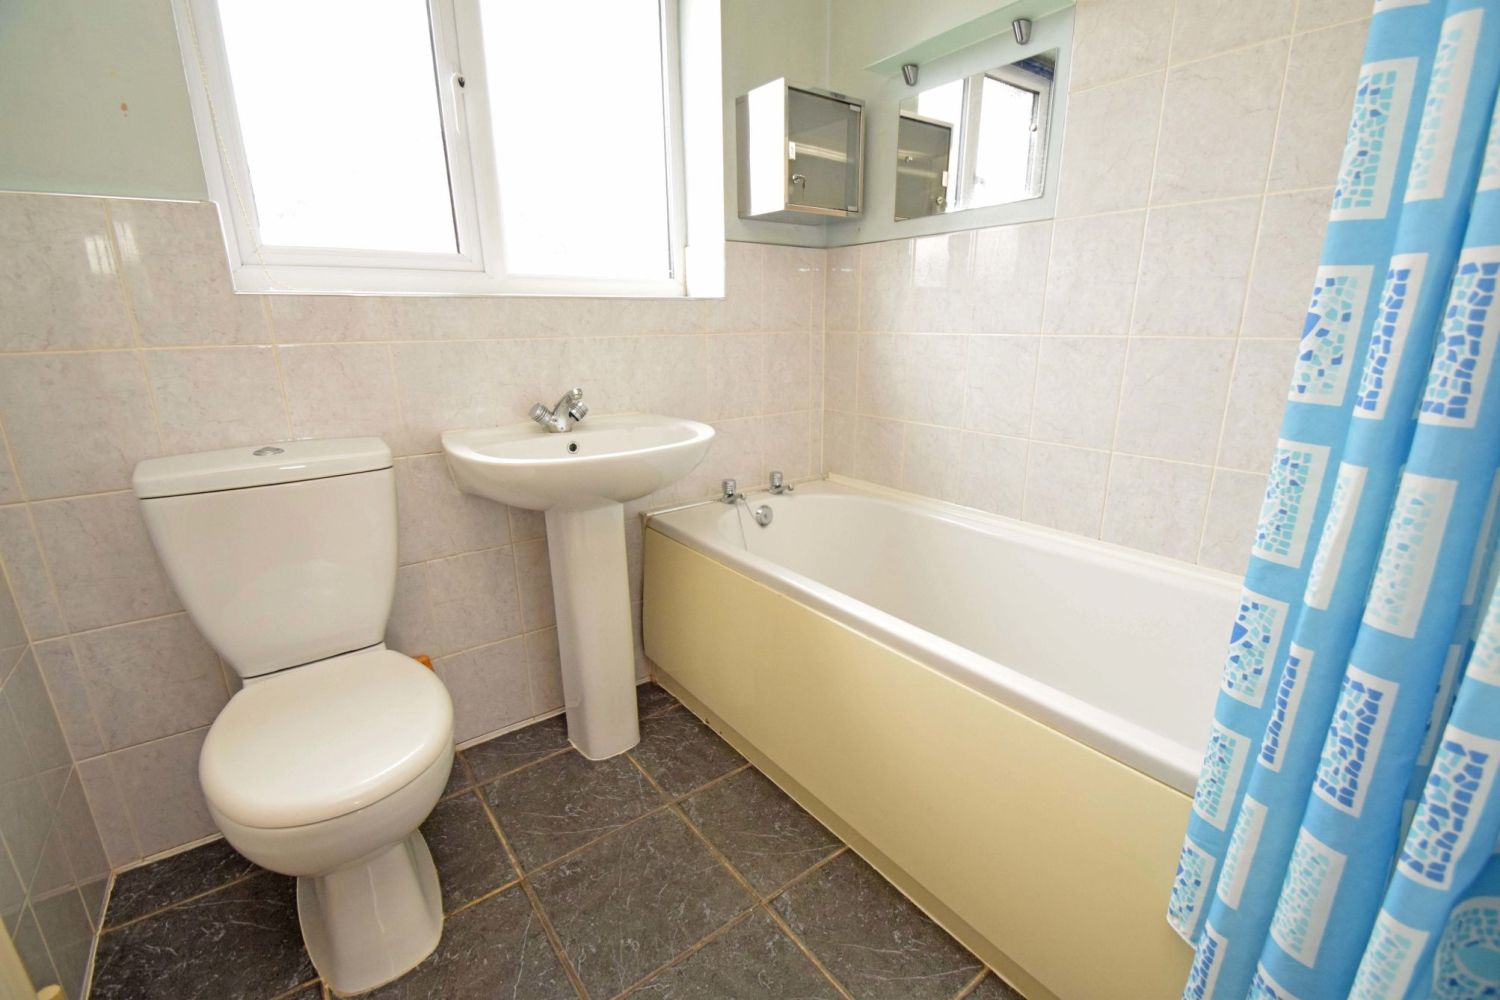 3 bed detached for sale in Avon Close, Stoke Heath, Bromsgrove, B60  - Property Image 11